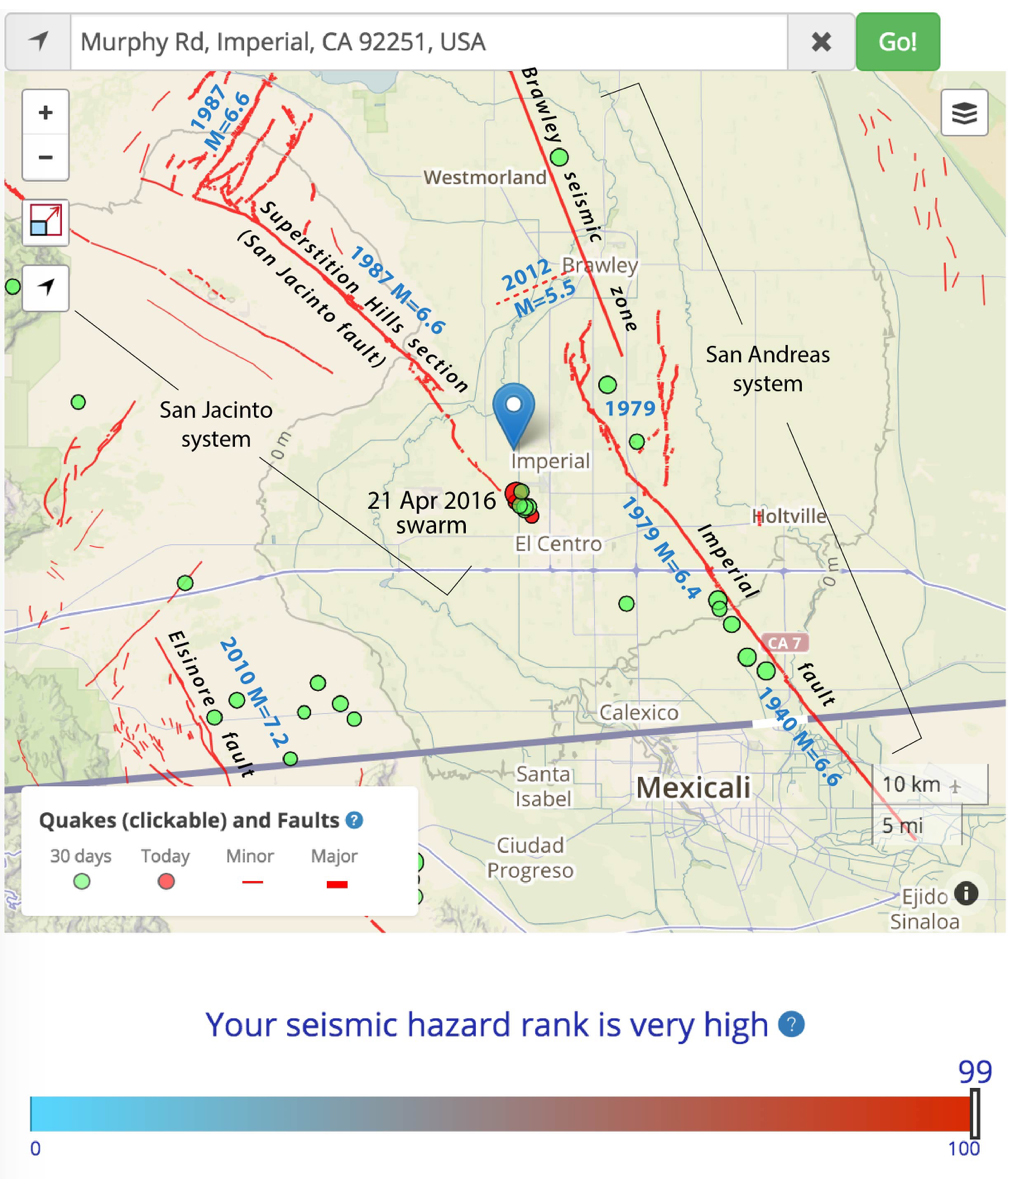 The great San Andreas and San Jacinto fault systems somehow merge in the deep, sediment-filled Salton trough. The size and year of historical earthquake ruptures are shown in blue.